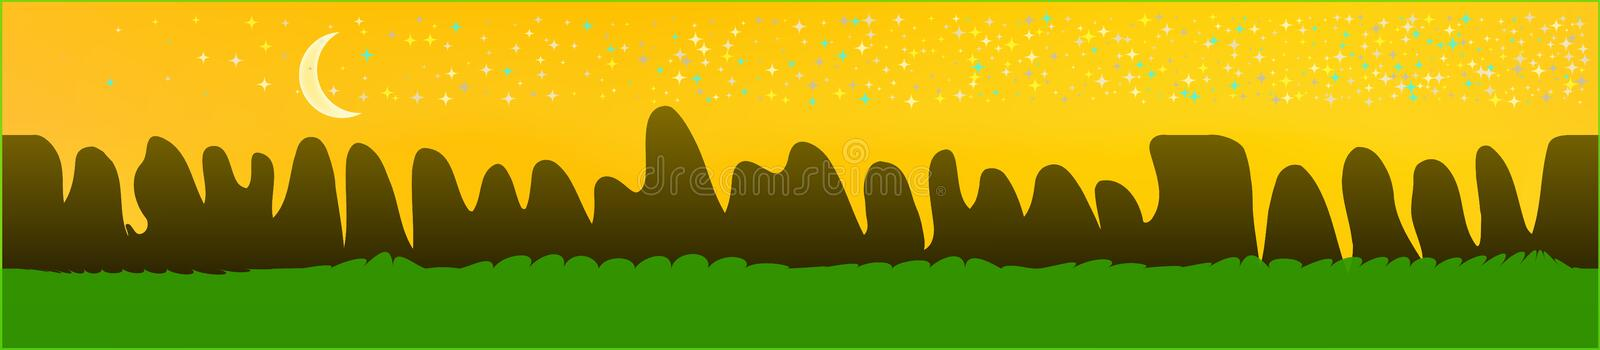 Yellow sky, and mountains landscape. Abstract, horizontal texture background picture. Colorful skinali background abstraction. Recent glass print fantasy royalty free illustration